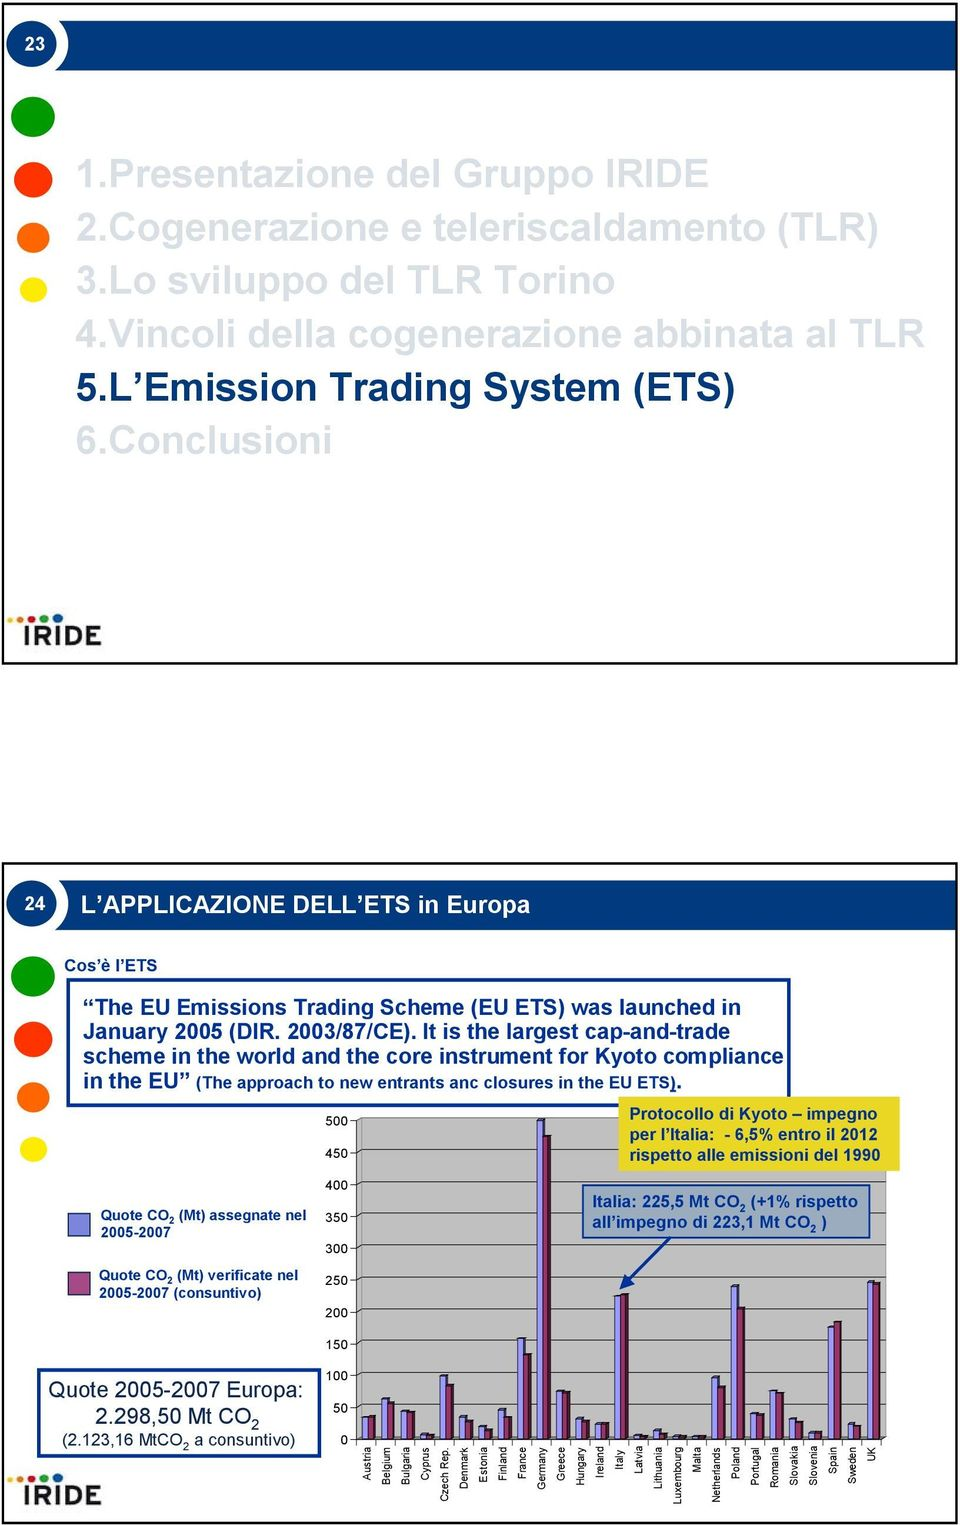 It is the largest cap-and-trade scheme in the world and the core instrument for Kyoto compliance in the EU (The approach to new entrants anc closures in the EU ETS).